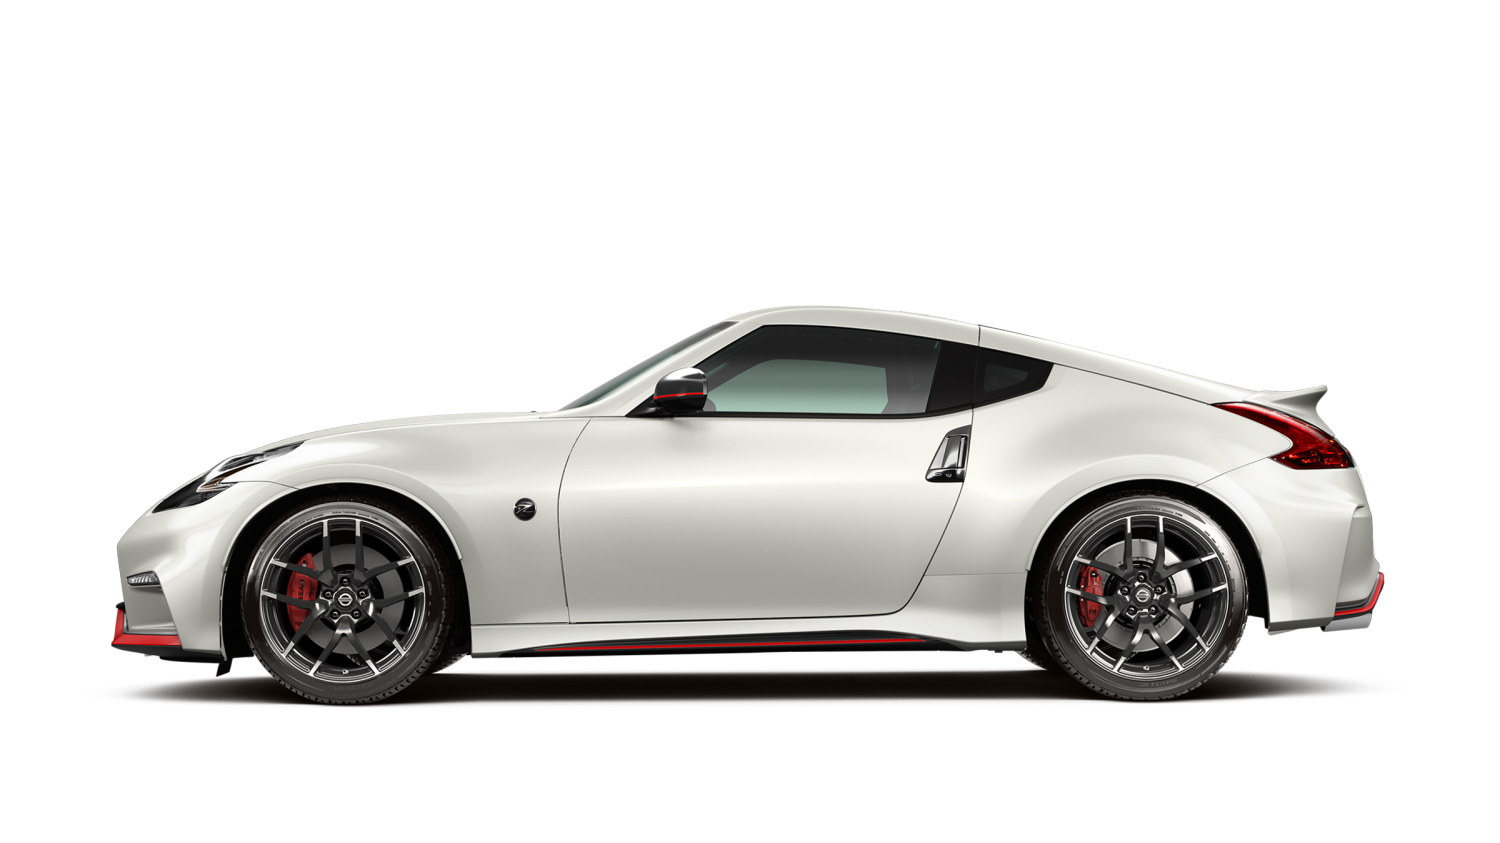 84 The 2019 Nissan 370Z Nismo Engine with 2019 Nissan 370Z Nismo